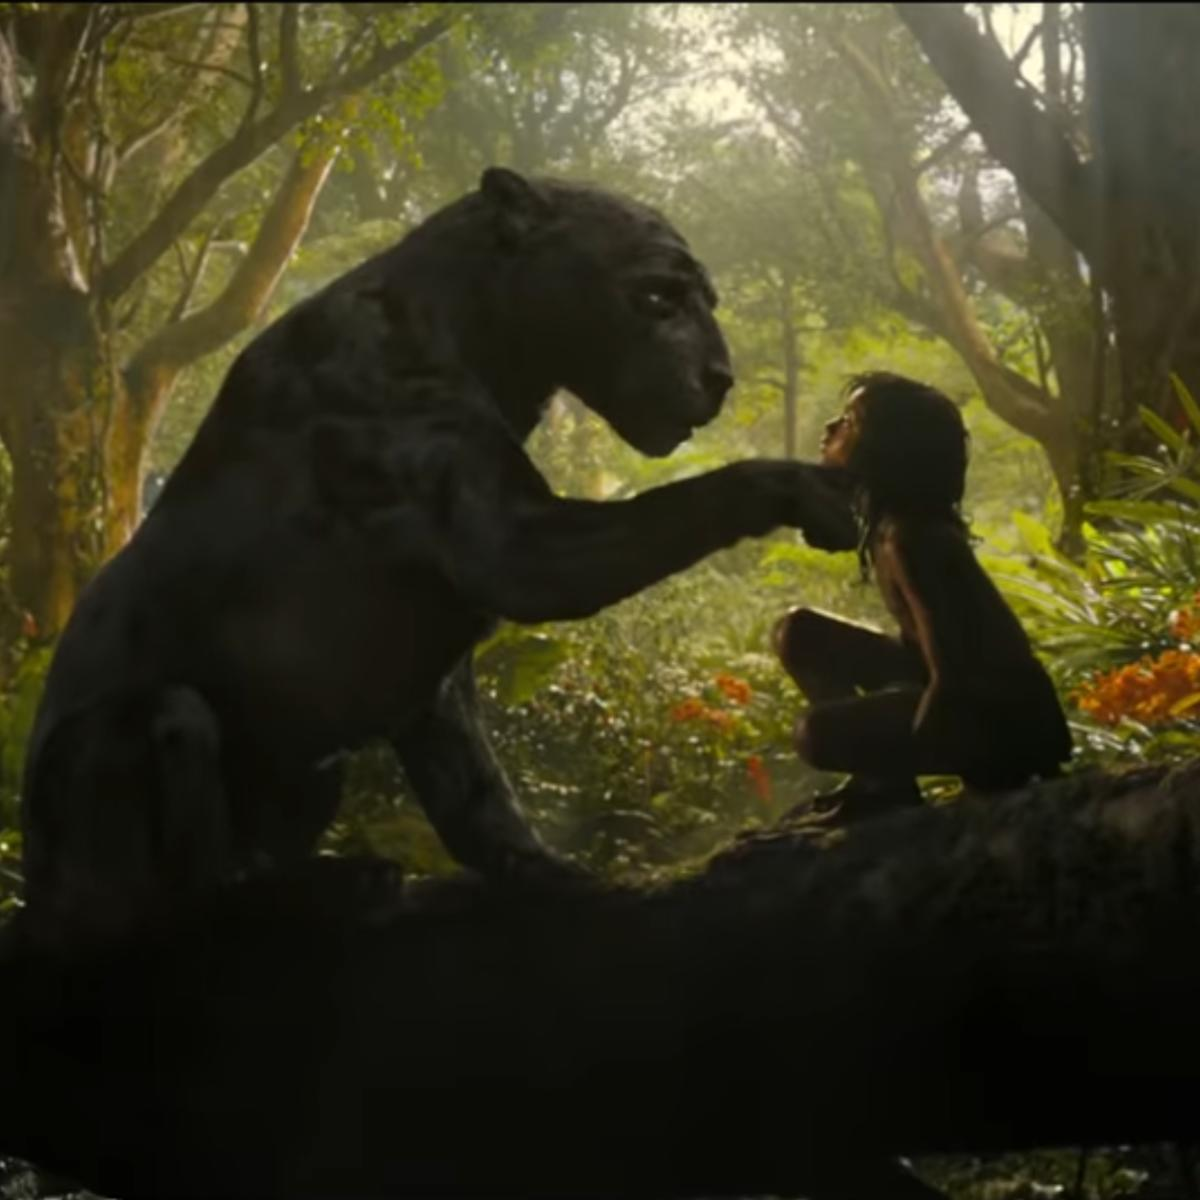 The Trailer For Netflix's 'Mowgli' Is Here To Absolutely Jungle Your Books